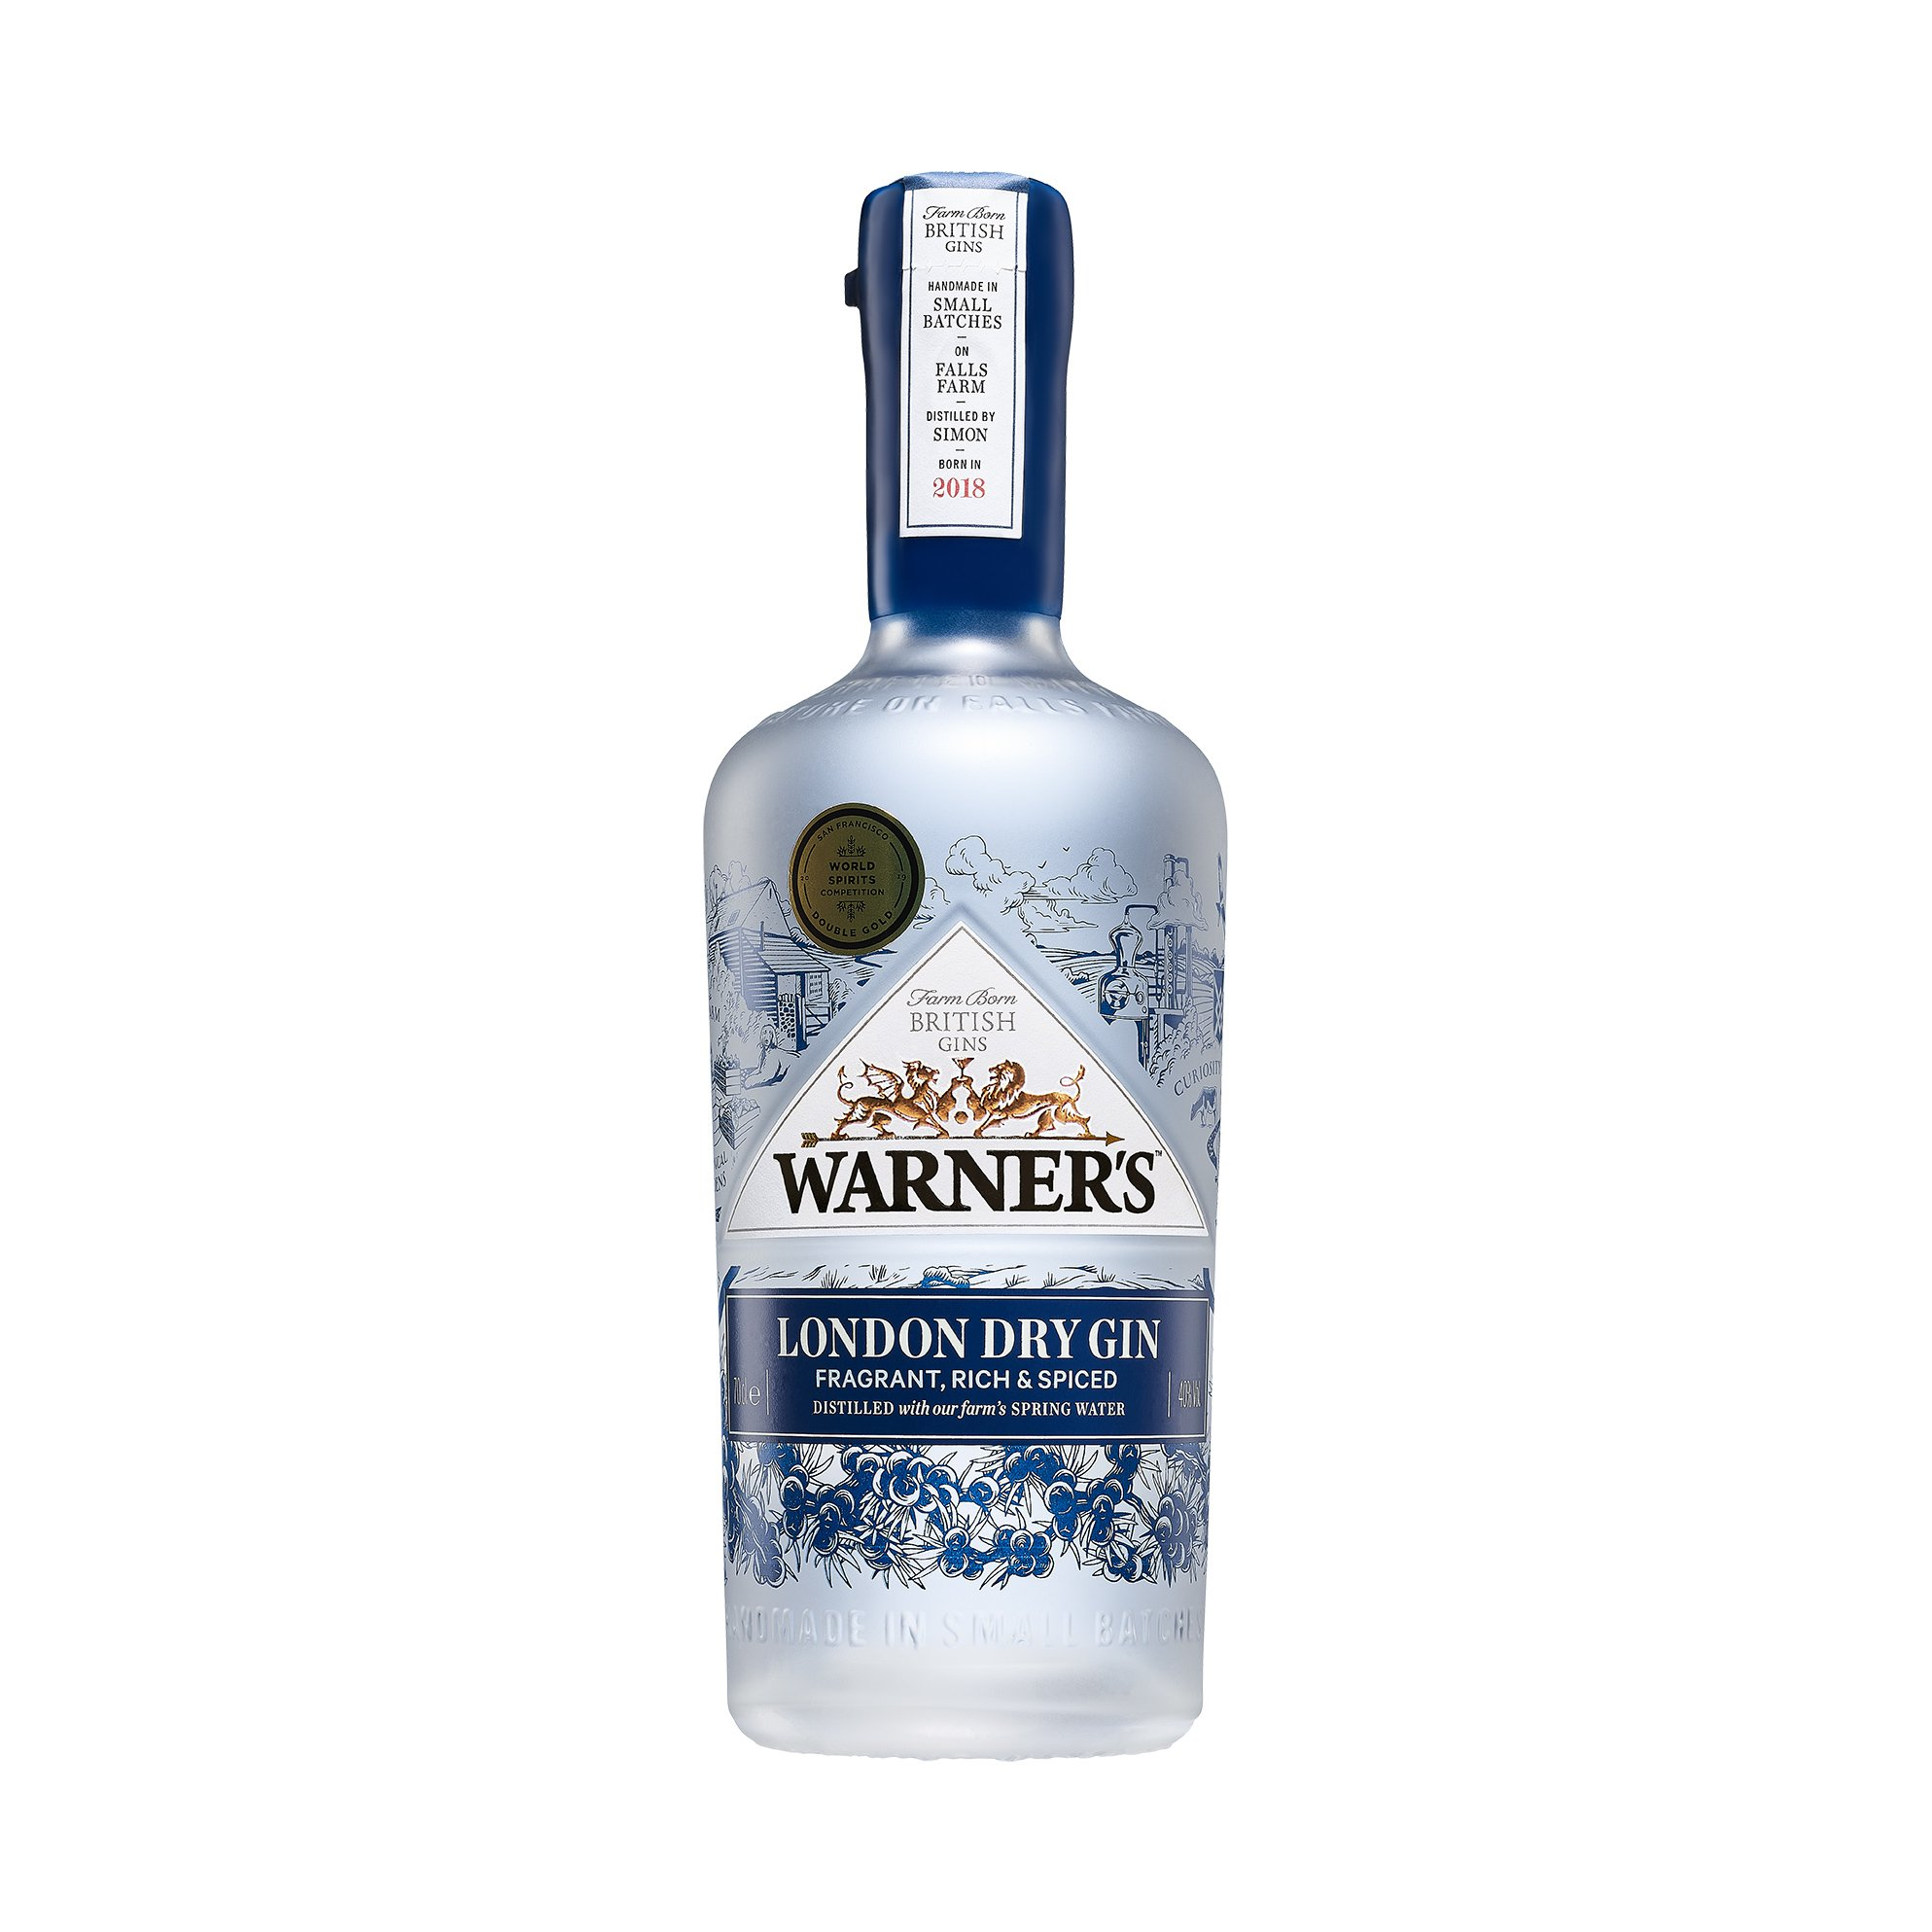 Warner's London Dry Gin